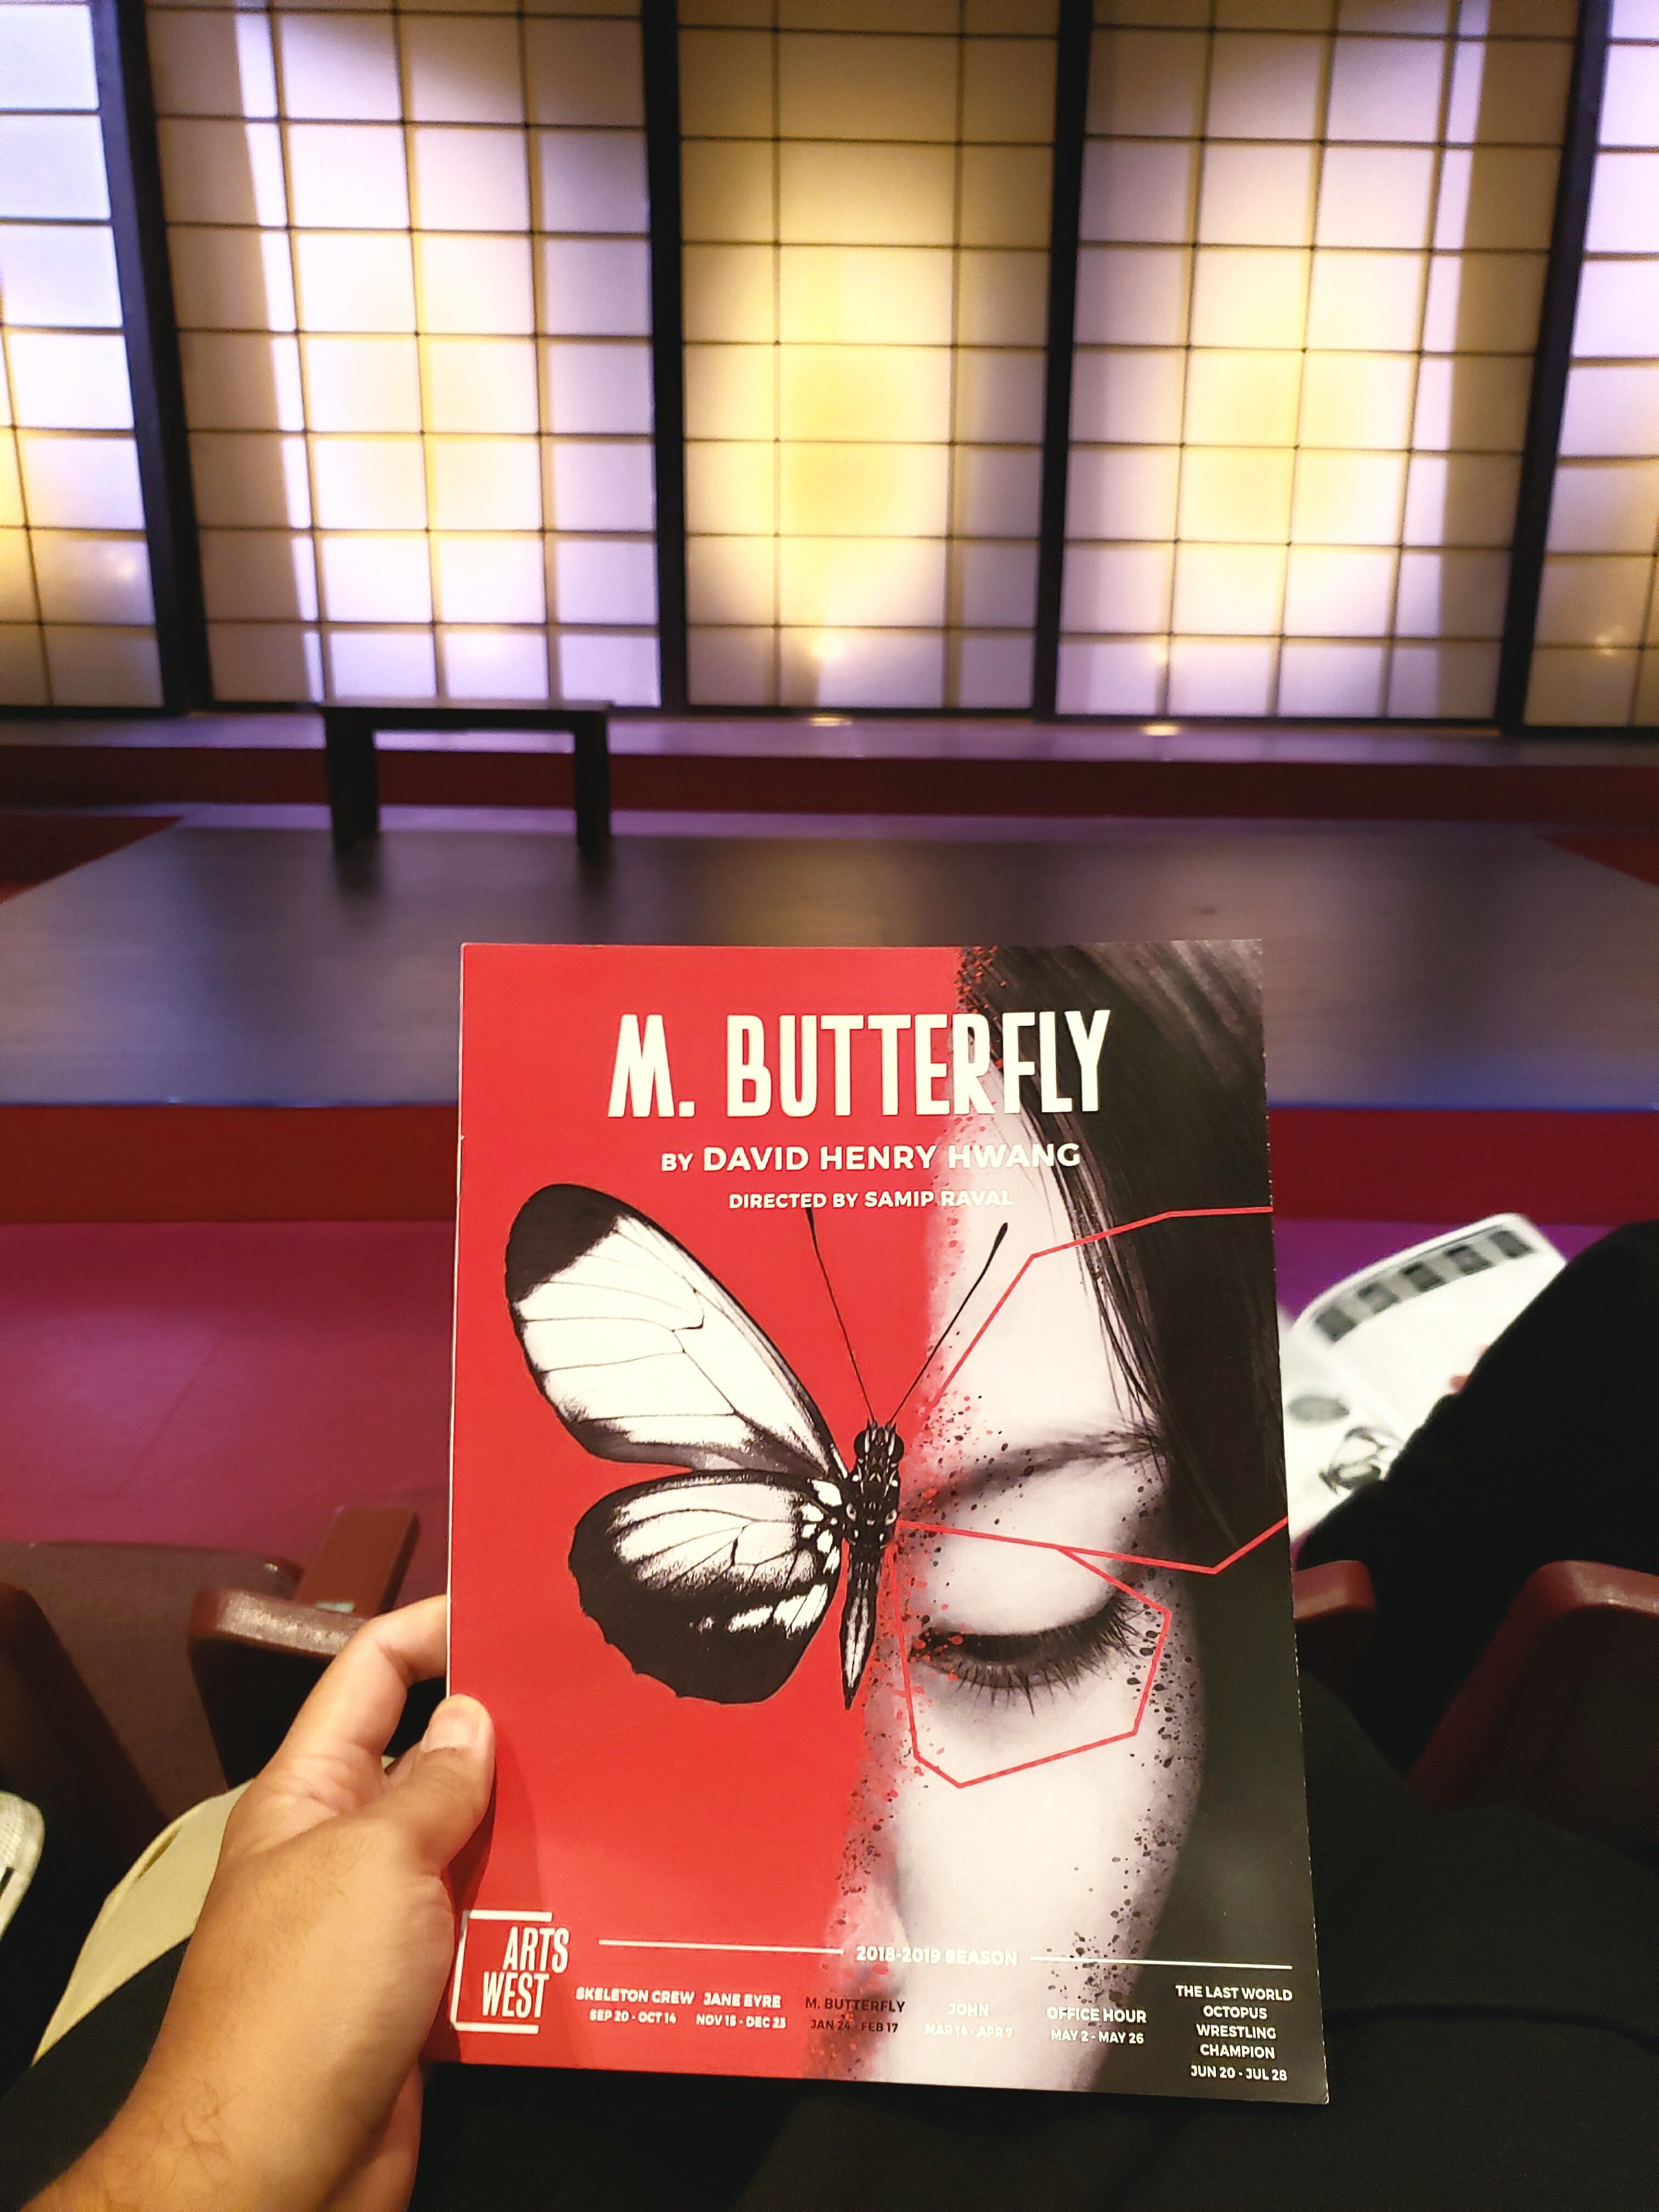 #Riveting Tony Awards-winning #play M. Butterfly. #Multilayered commentary on #gender/#sexual conformity, #Asian #racial stereotypes, & #east vs #west. A #Seattle play finally uses #nudity constructively. #madameButterfly